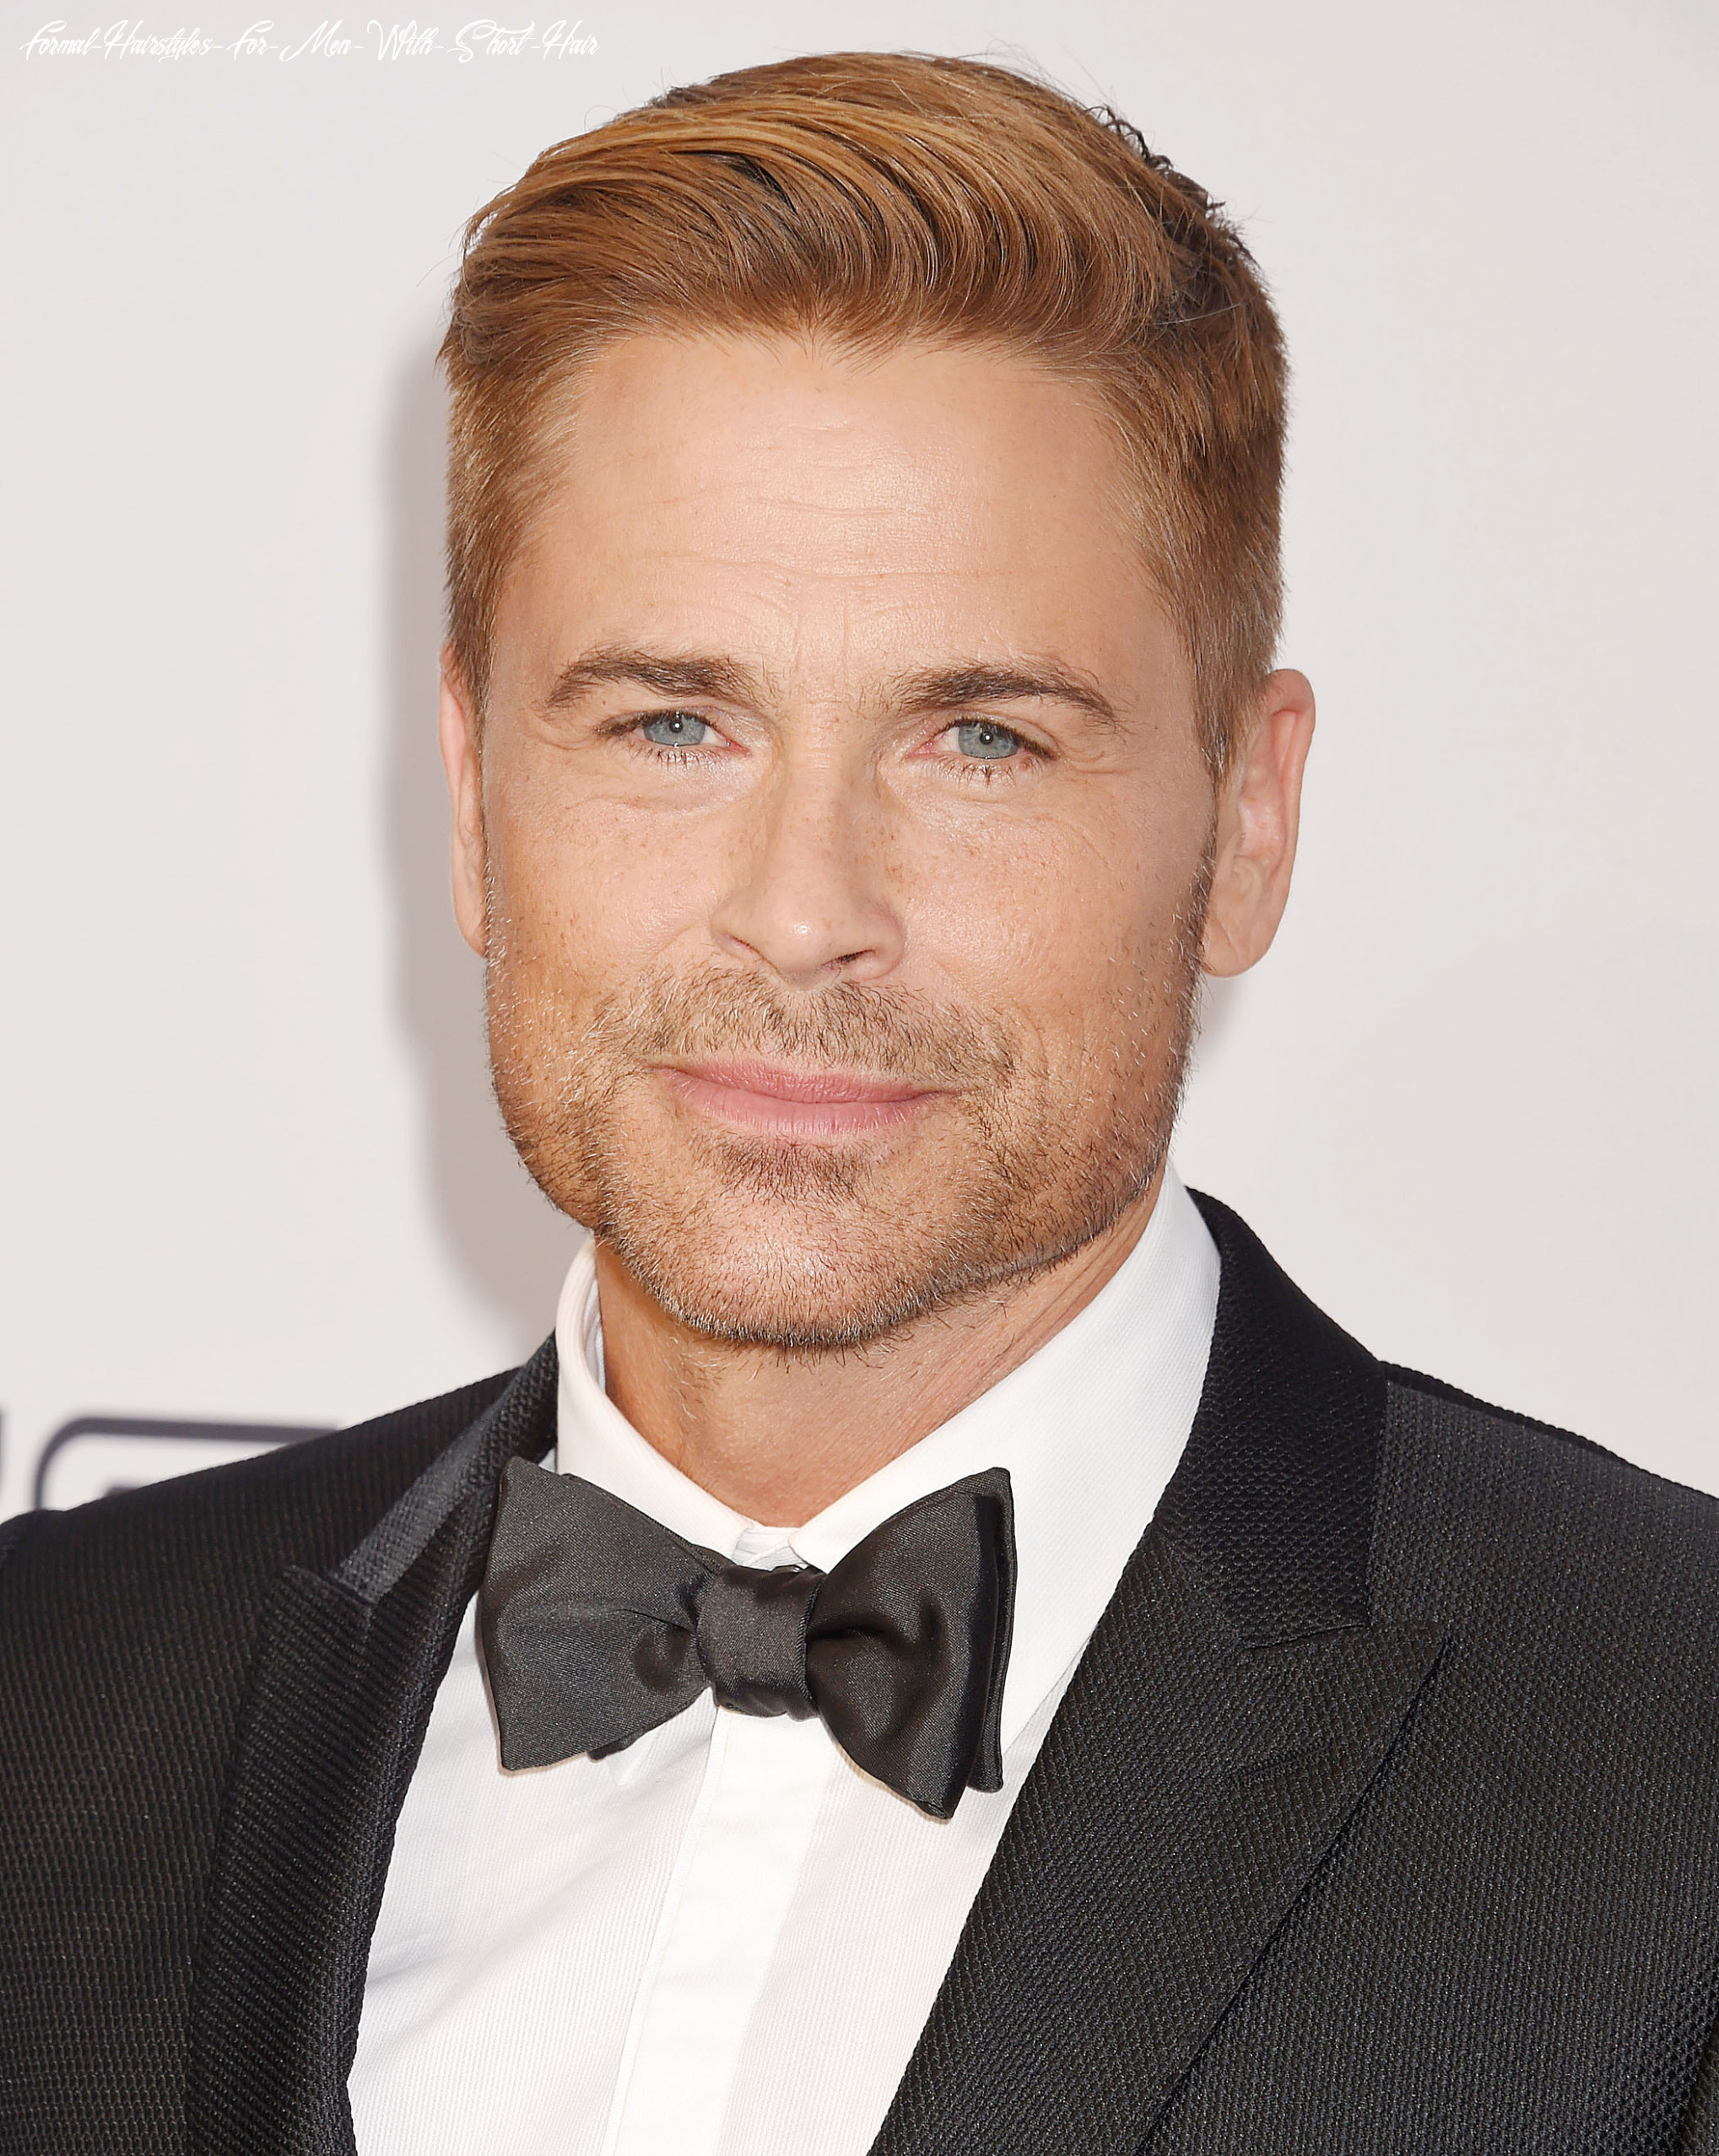 Formal hairstyles for men with short hair   find your perfect hair